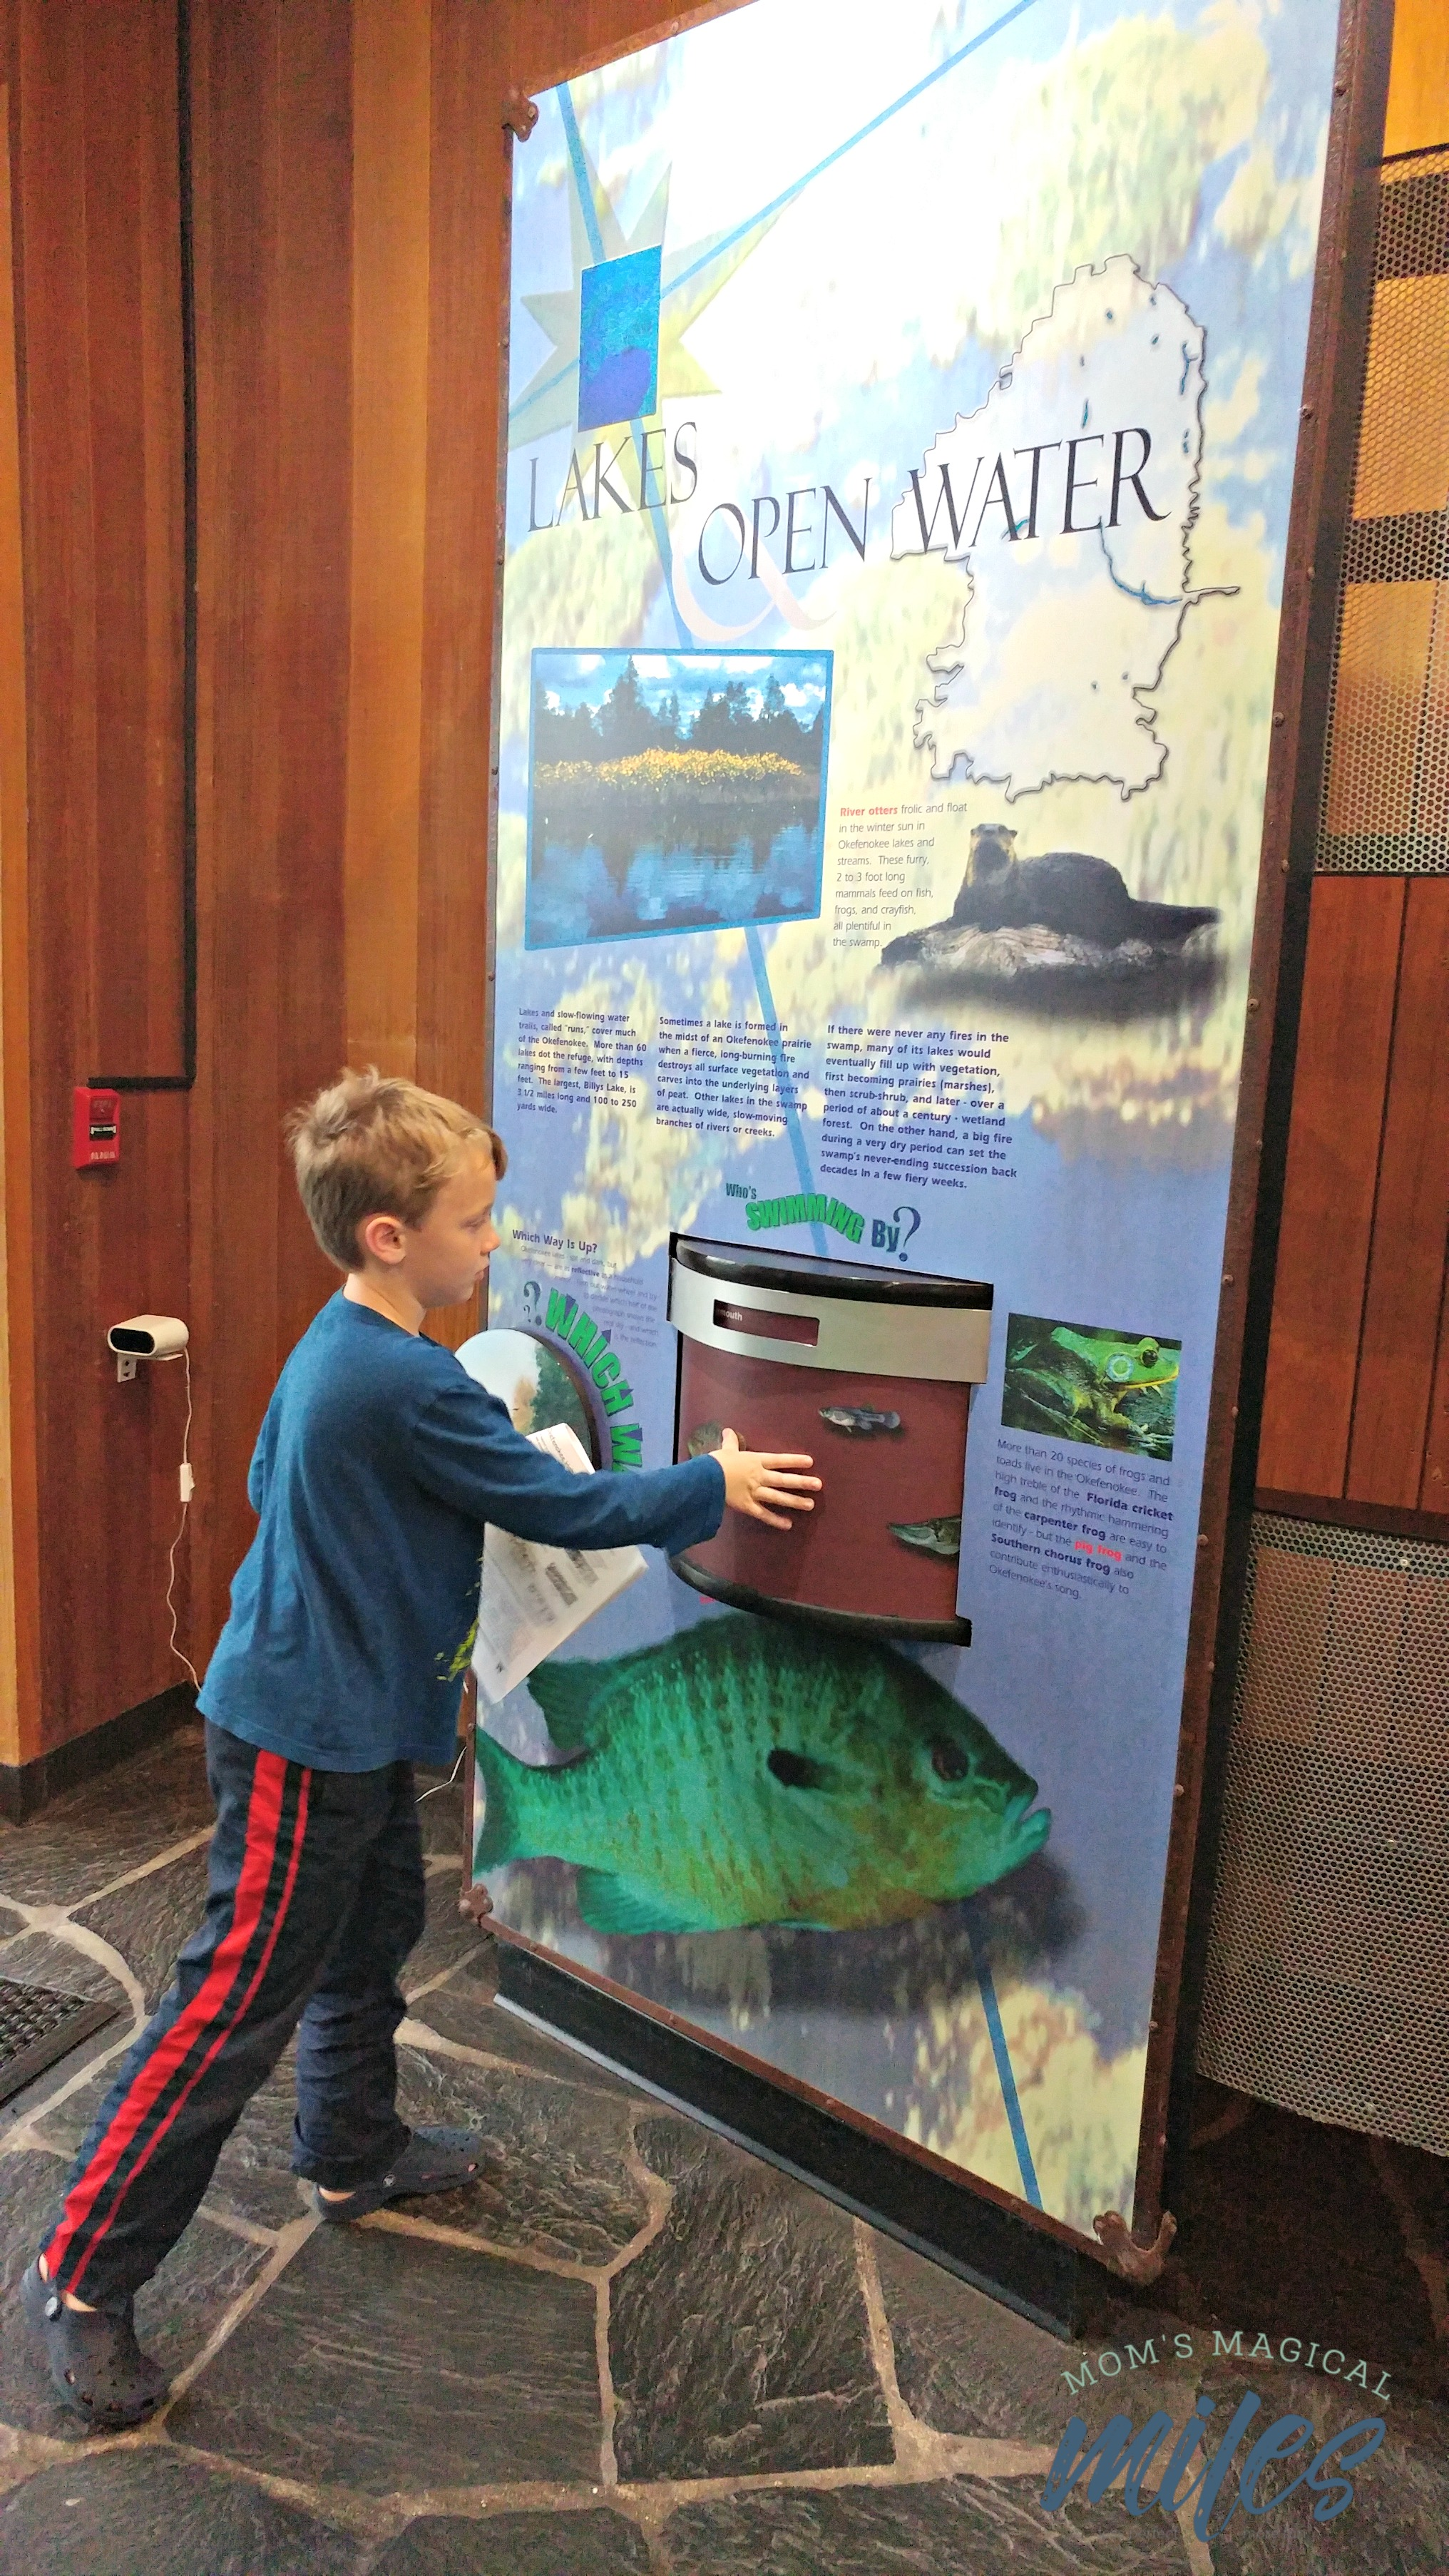 Exploring the hands-on displays in the Okefenokee National Wildlife Refuge visitor's center.